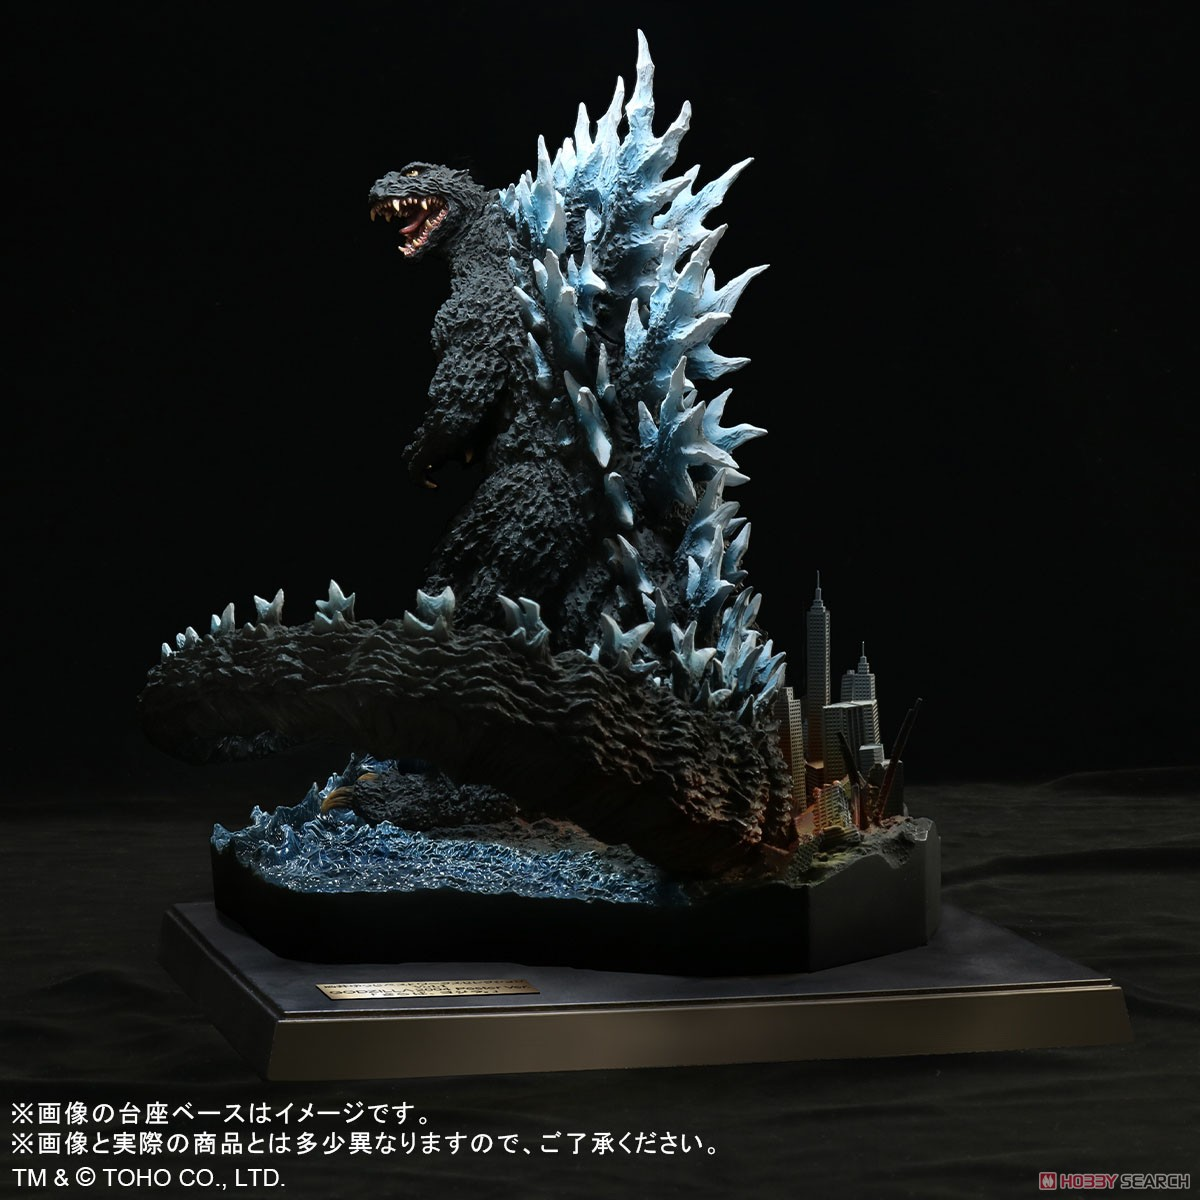 Real Master Collection Yuji Sakai Best Works Selection Godzilla (2004) Poster Version `Farewell, Godzilla.` (Completed) Item picture1